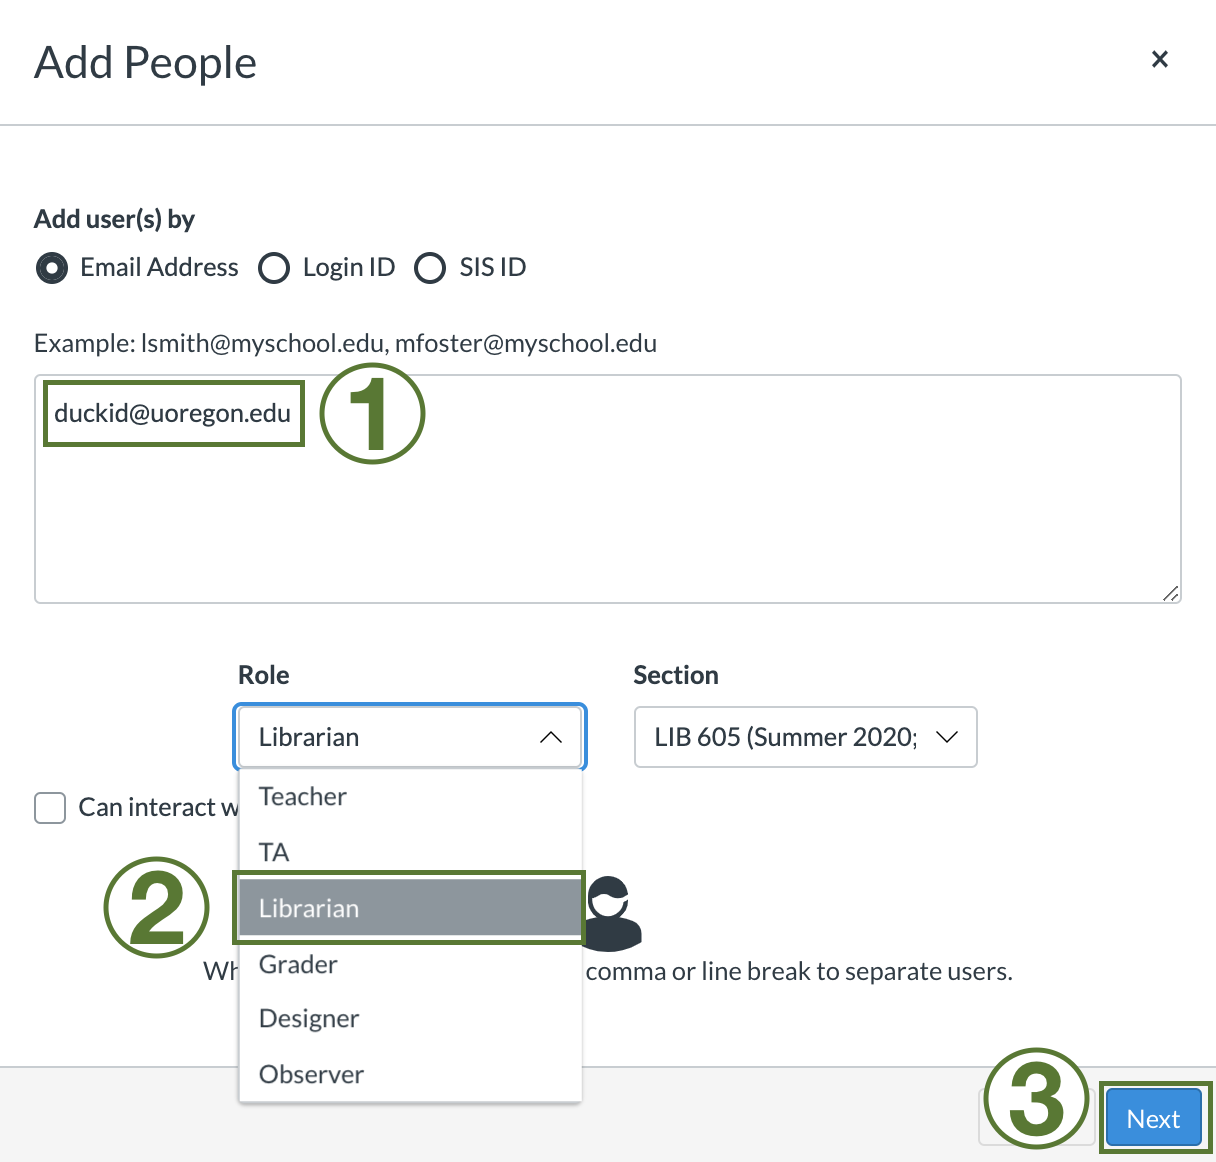 """Add people"" window in the Canvas Learning Management system. Image demonstrates adding a librarian to a course by entering email and selecting the ""Librarian"" role in the drop down menu."